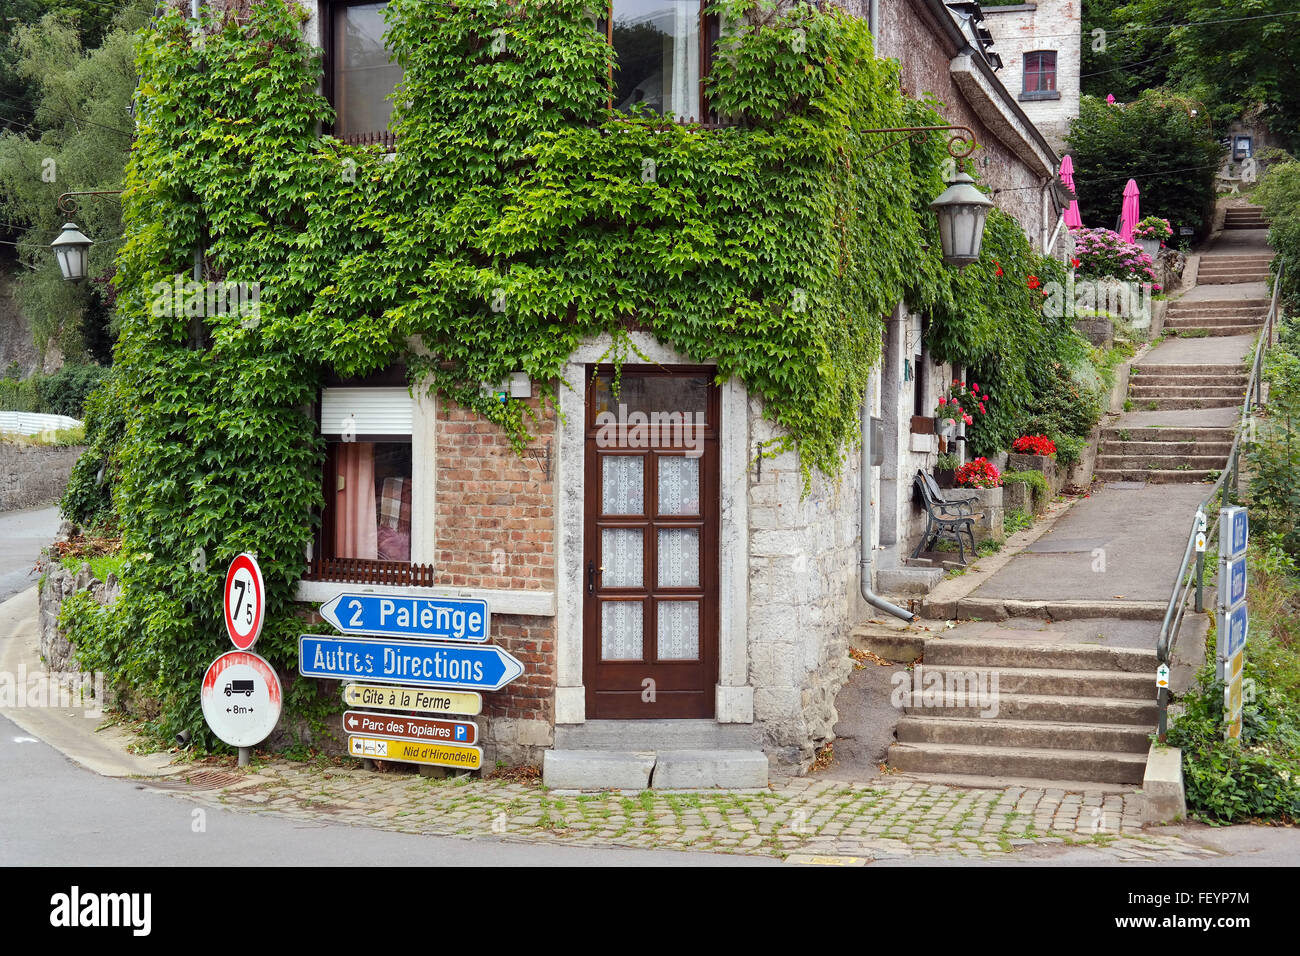 Dubuy in the Ardennes - Stock Image